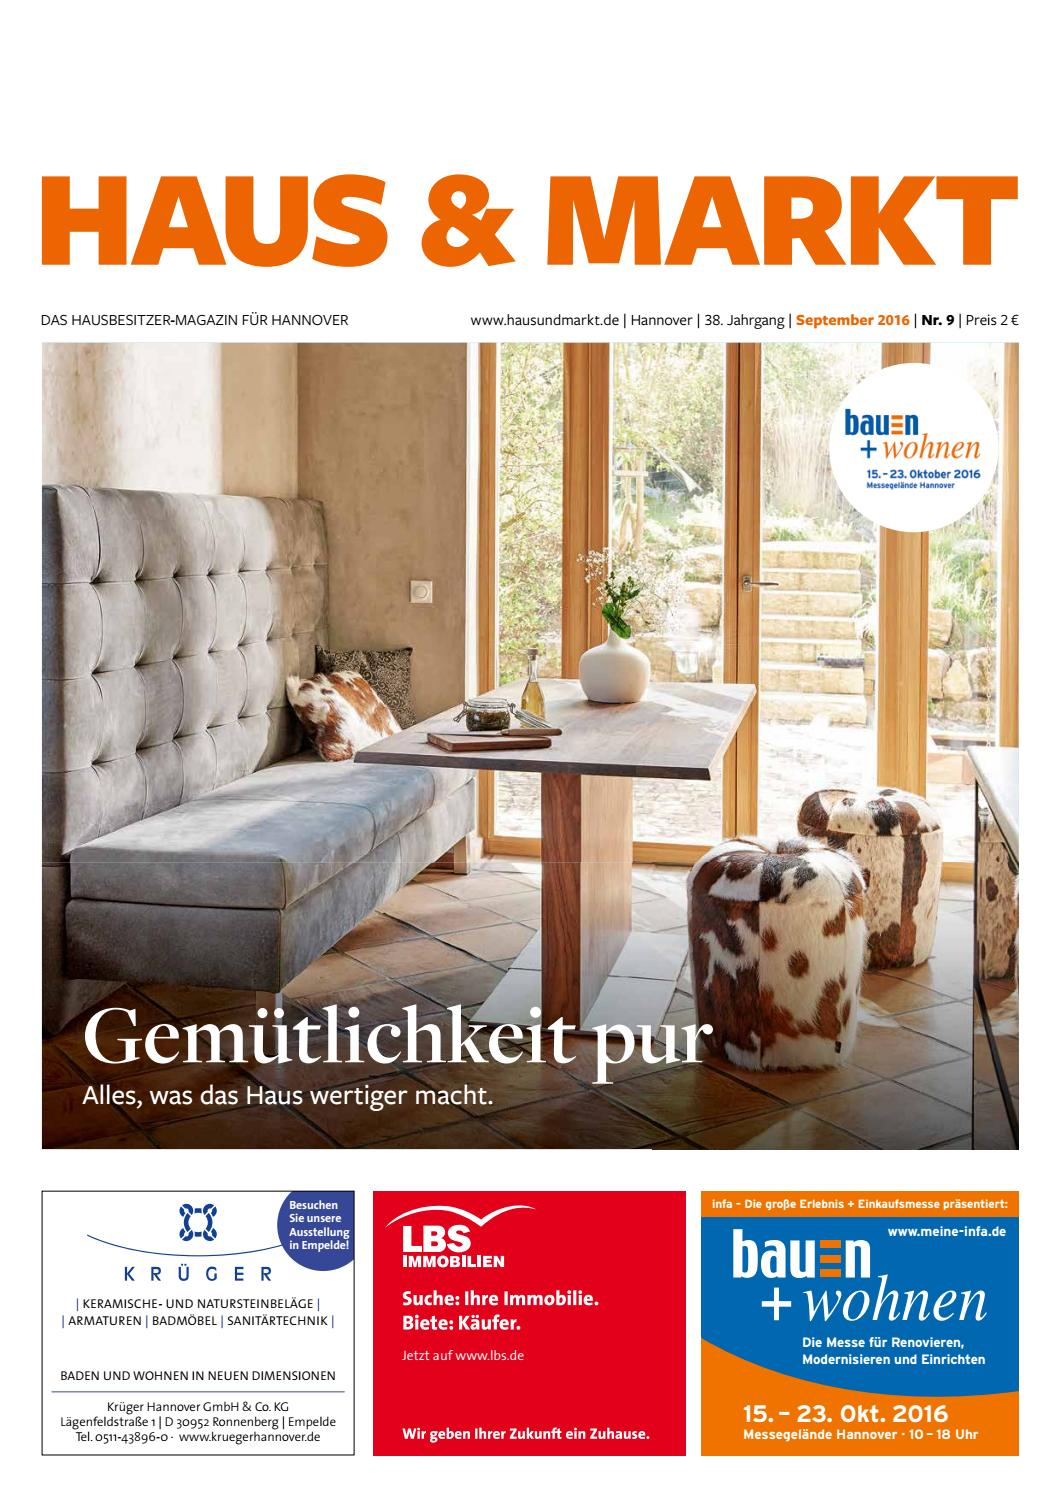 haus und markt 09 2016 by schluetersche issuu. Black Bedroom Furniture Sets. Home Design Ideas